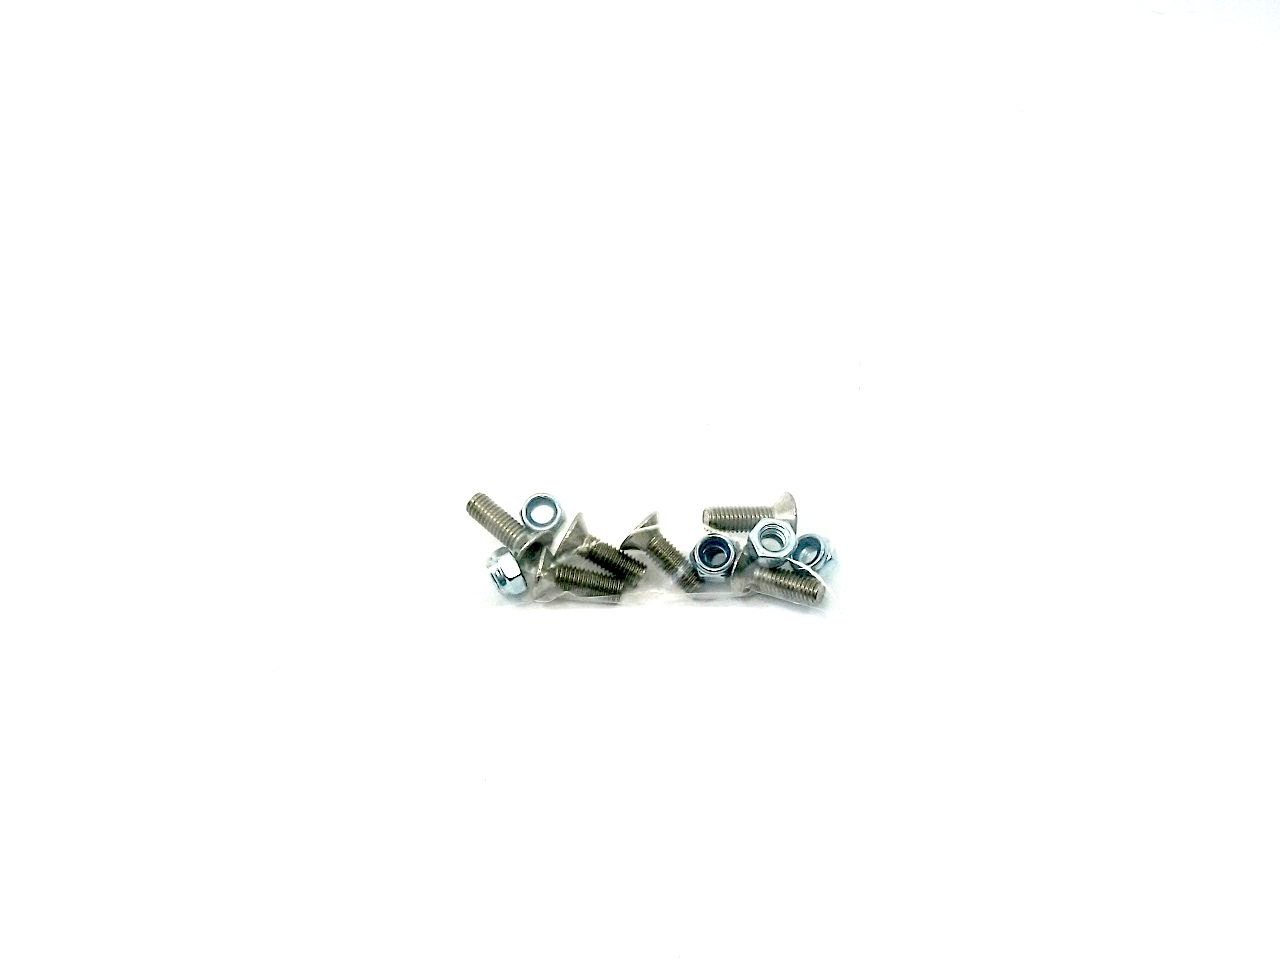 Moto-Lita XKE OEM Screw Kit